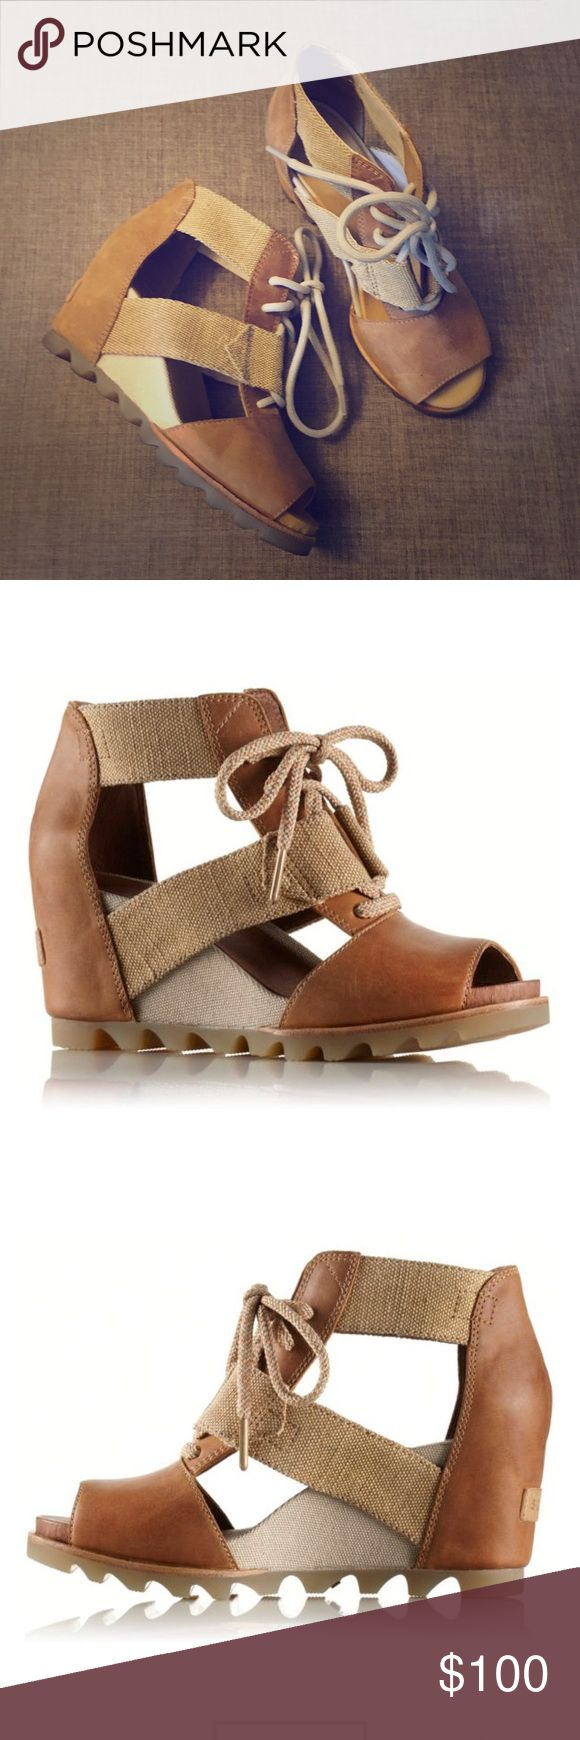 """Sorel Joanie Lace Wedge Sandal BeUtuful Sorel wedges size 7. Worn once as they were a """"sample"""" from a show. This is printed inside of shoe. They retail for 140$! Super comfortable and stylish. Sorel Shoes Wedges"""